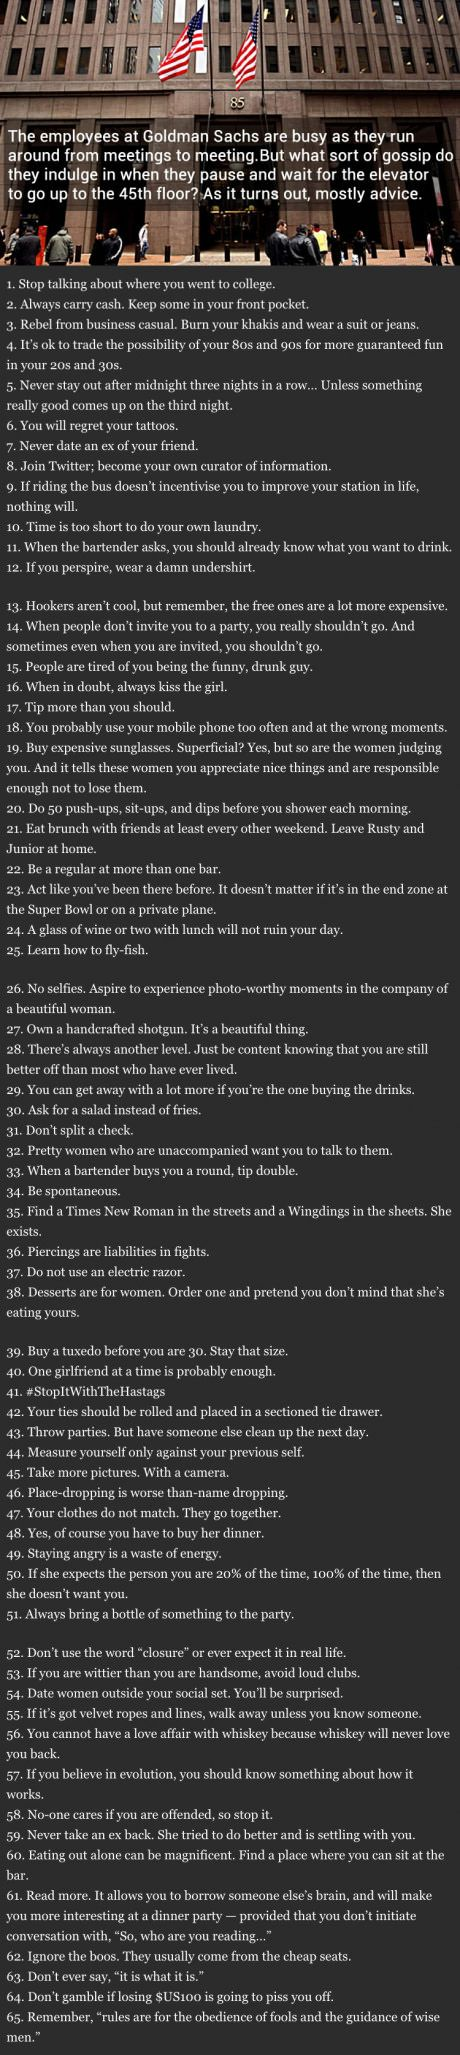 65 Rules For Being A Man According To Elevator Gossip At The Goldman Sachs. Wall Street Building. Some of these are against what I personally believe, but for the most part some good stuff